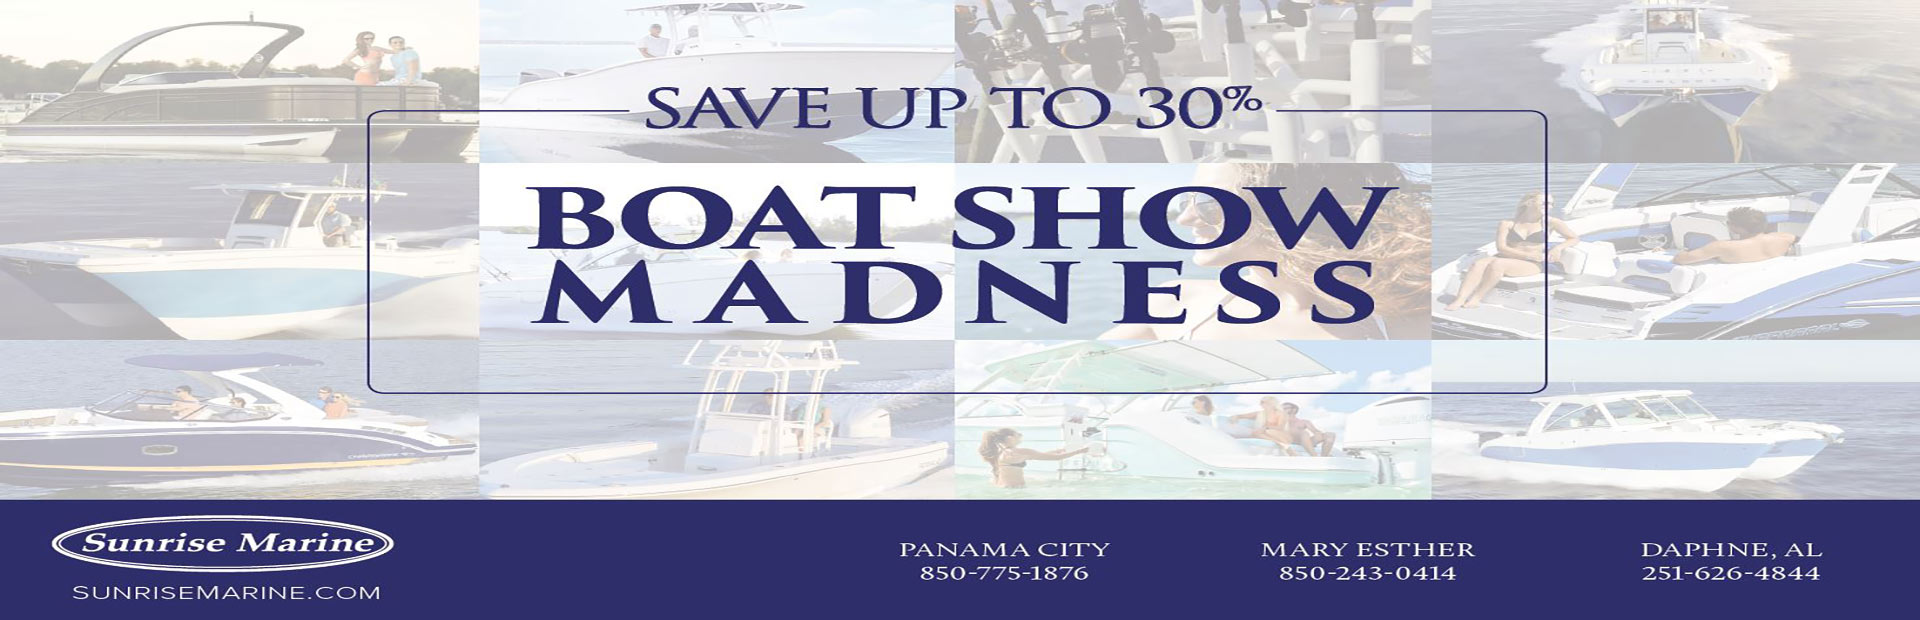 Save up to 30% Boat Show Madness